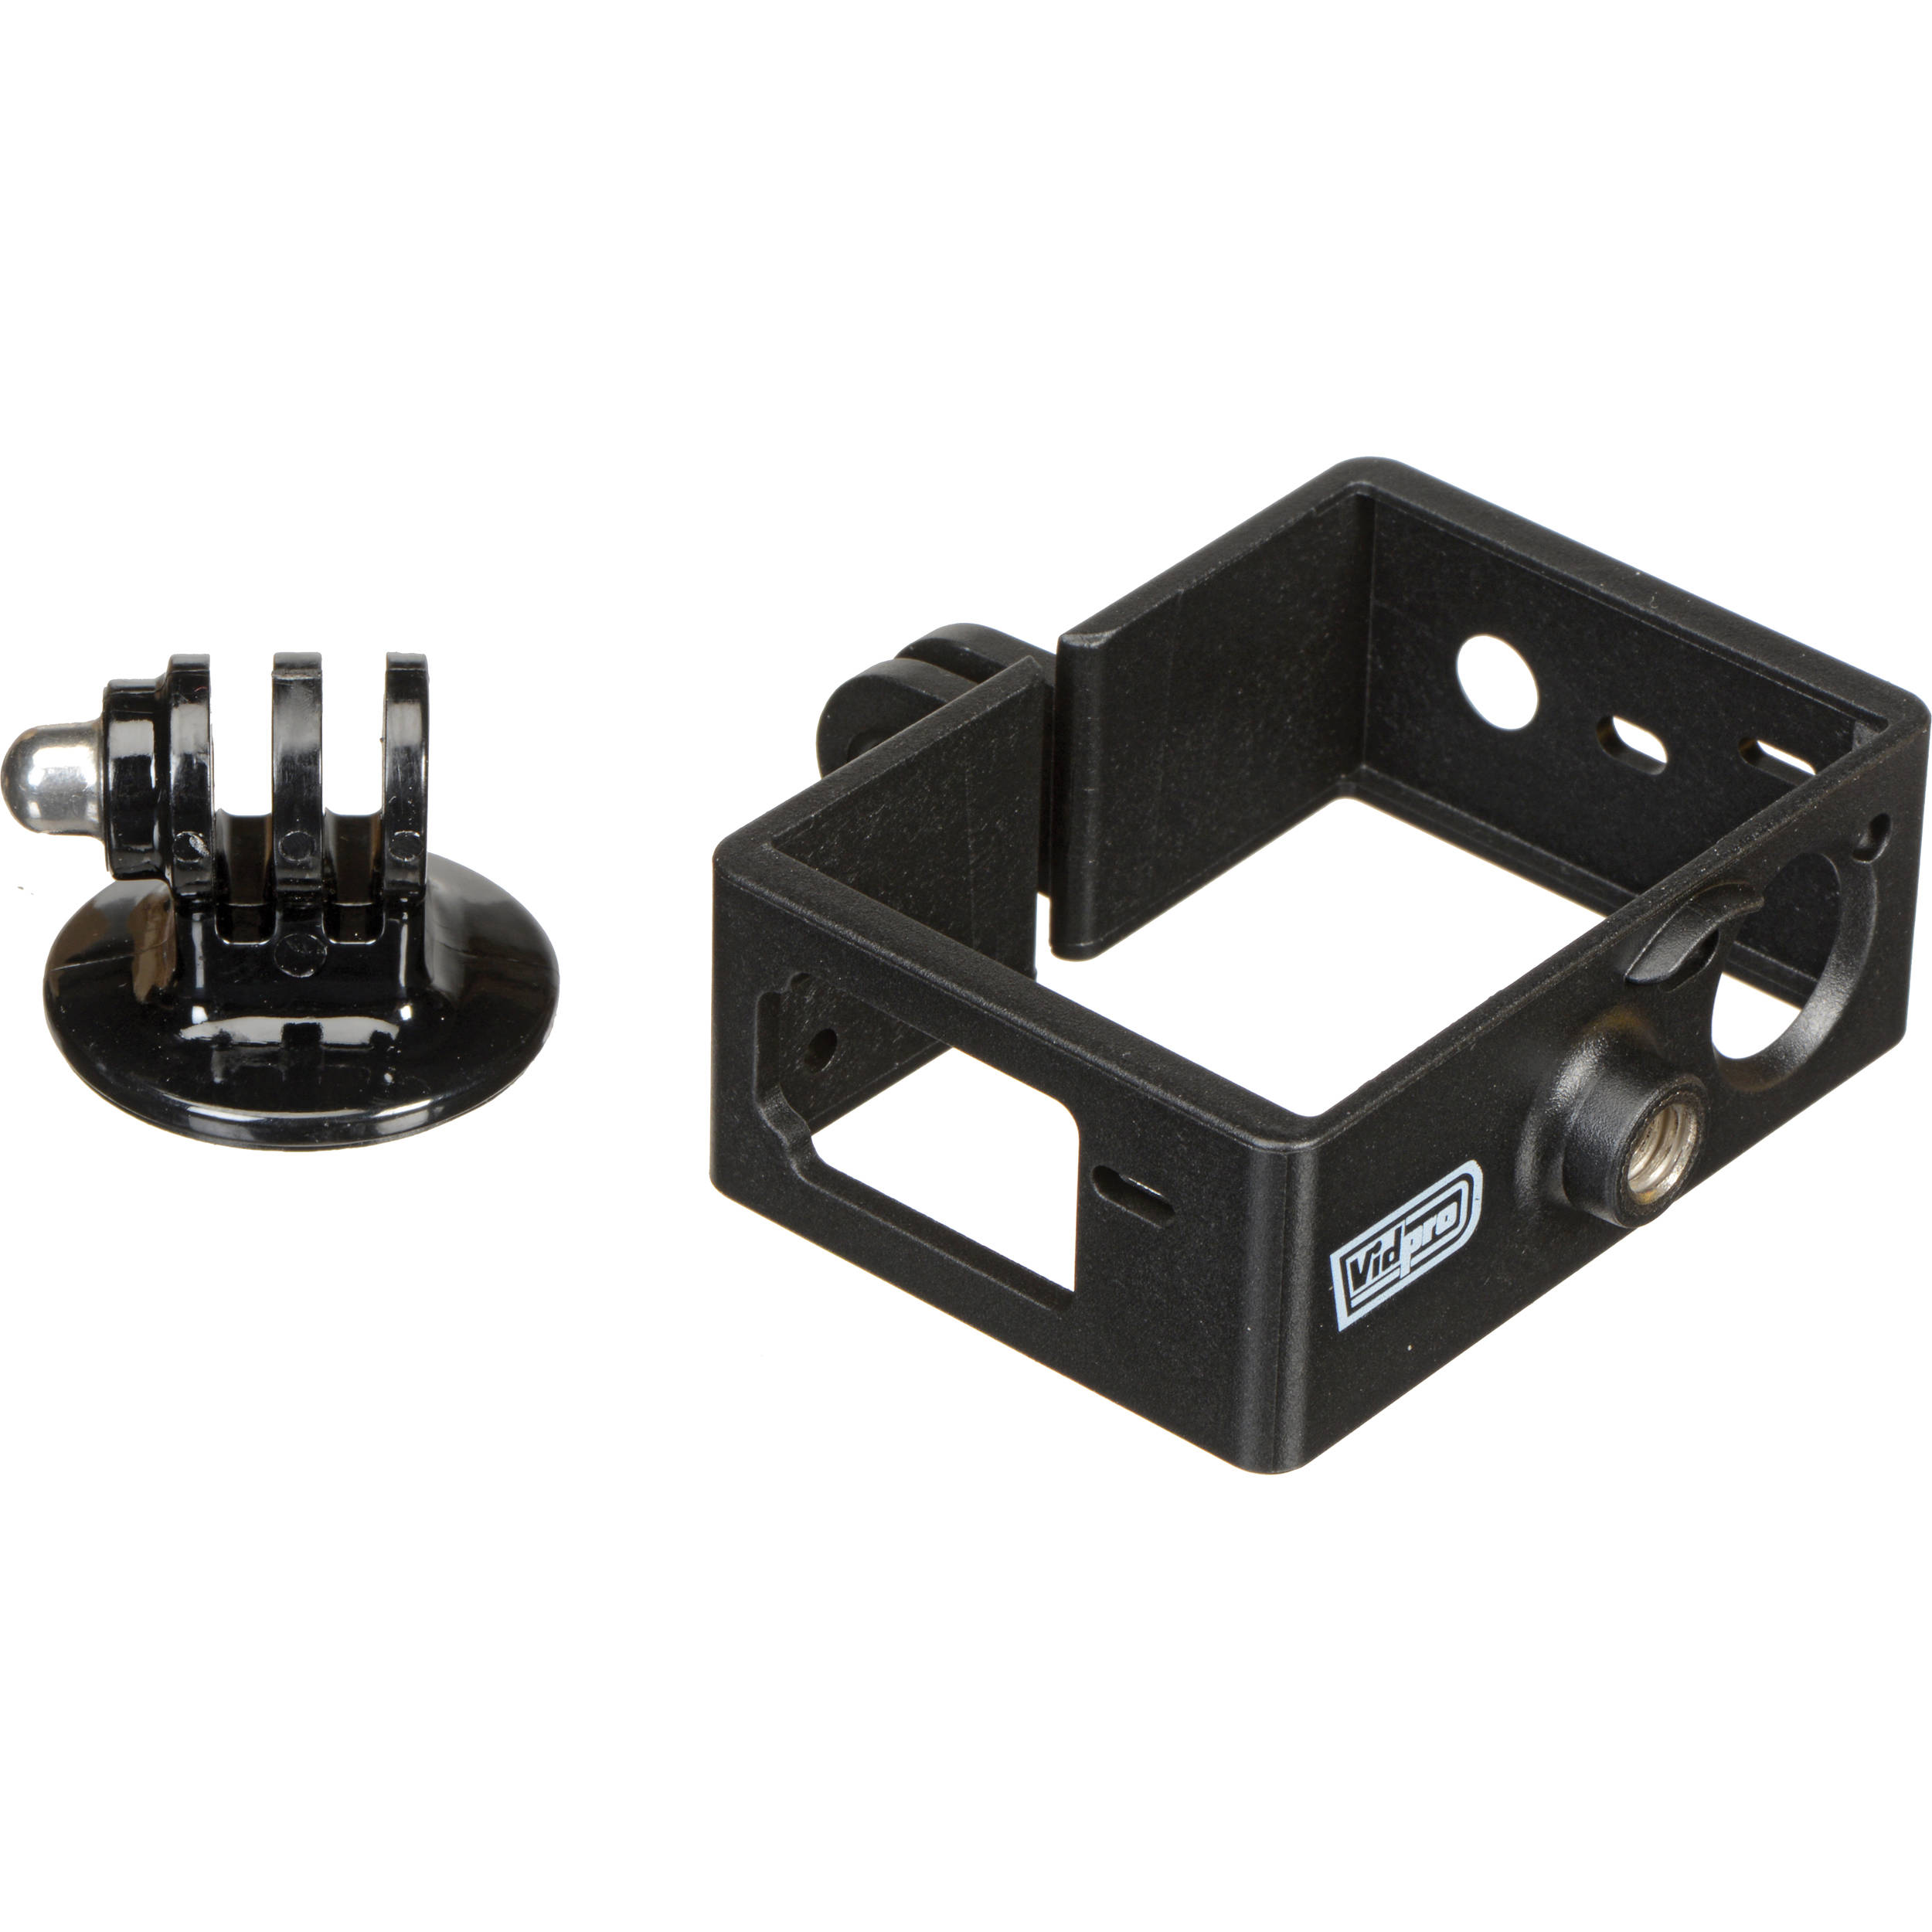 Vidpro Frame Mount for GoPro HERO3/3+/4 FR-GP B&H Photo Video